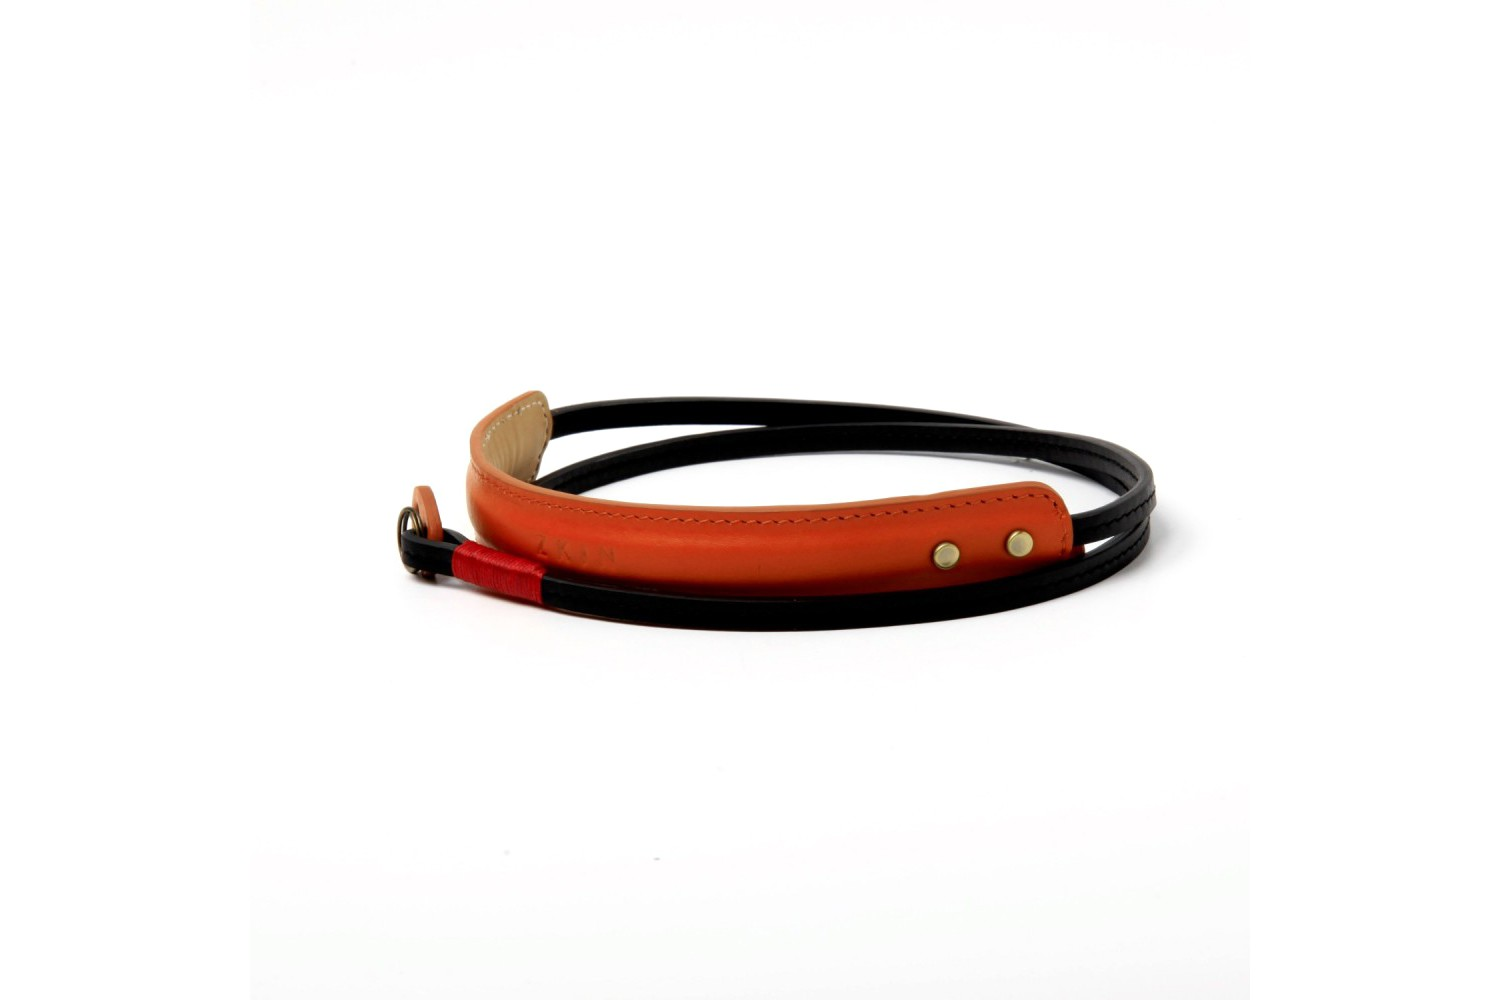 Zkin Camera Strap - Ladon (citrus orange)